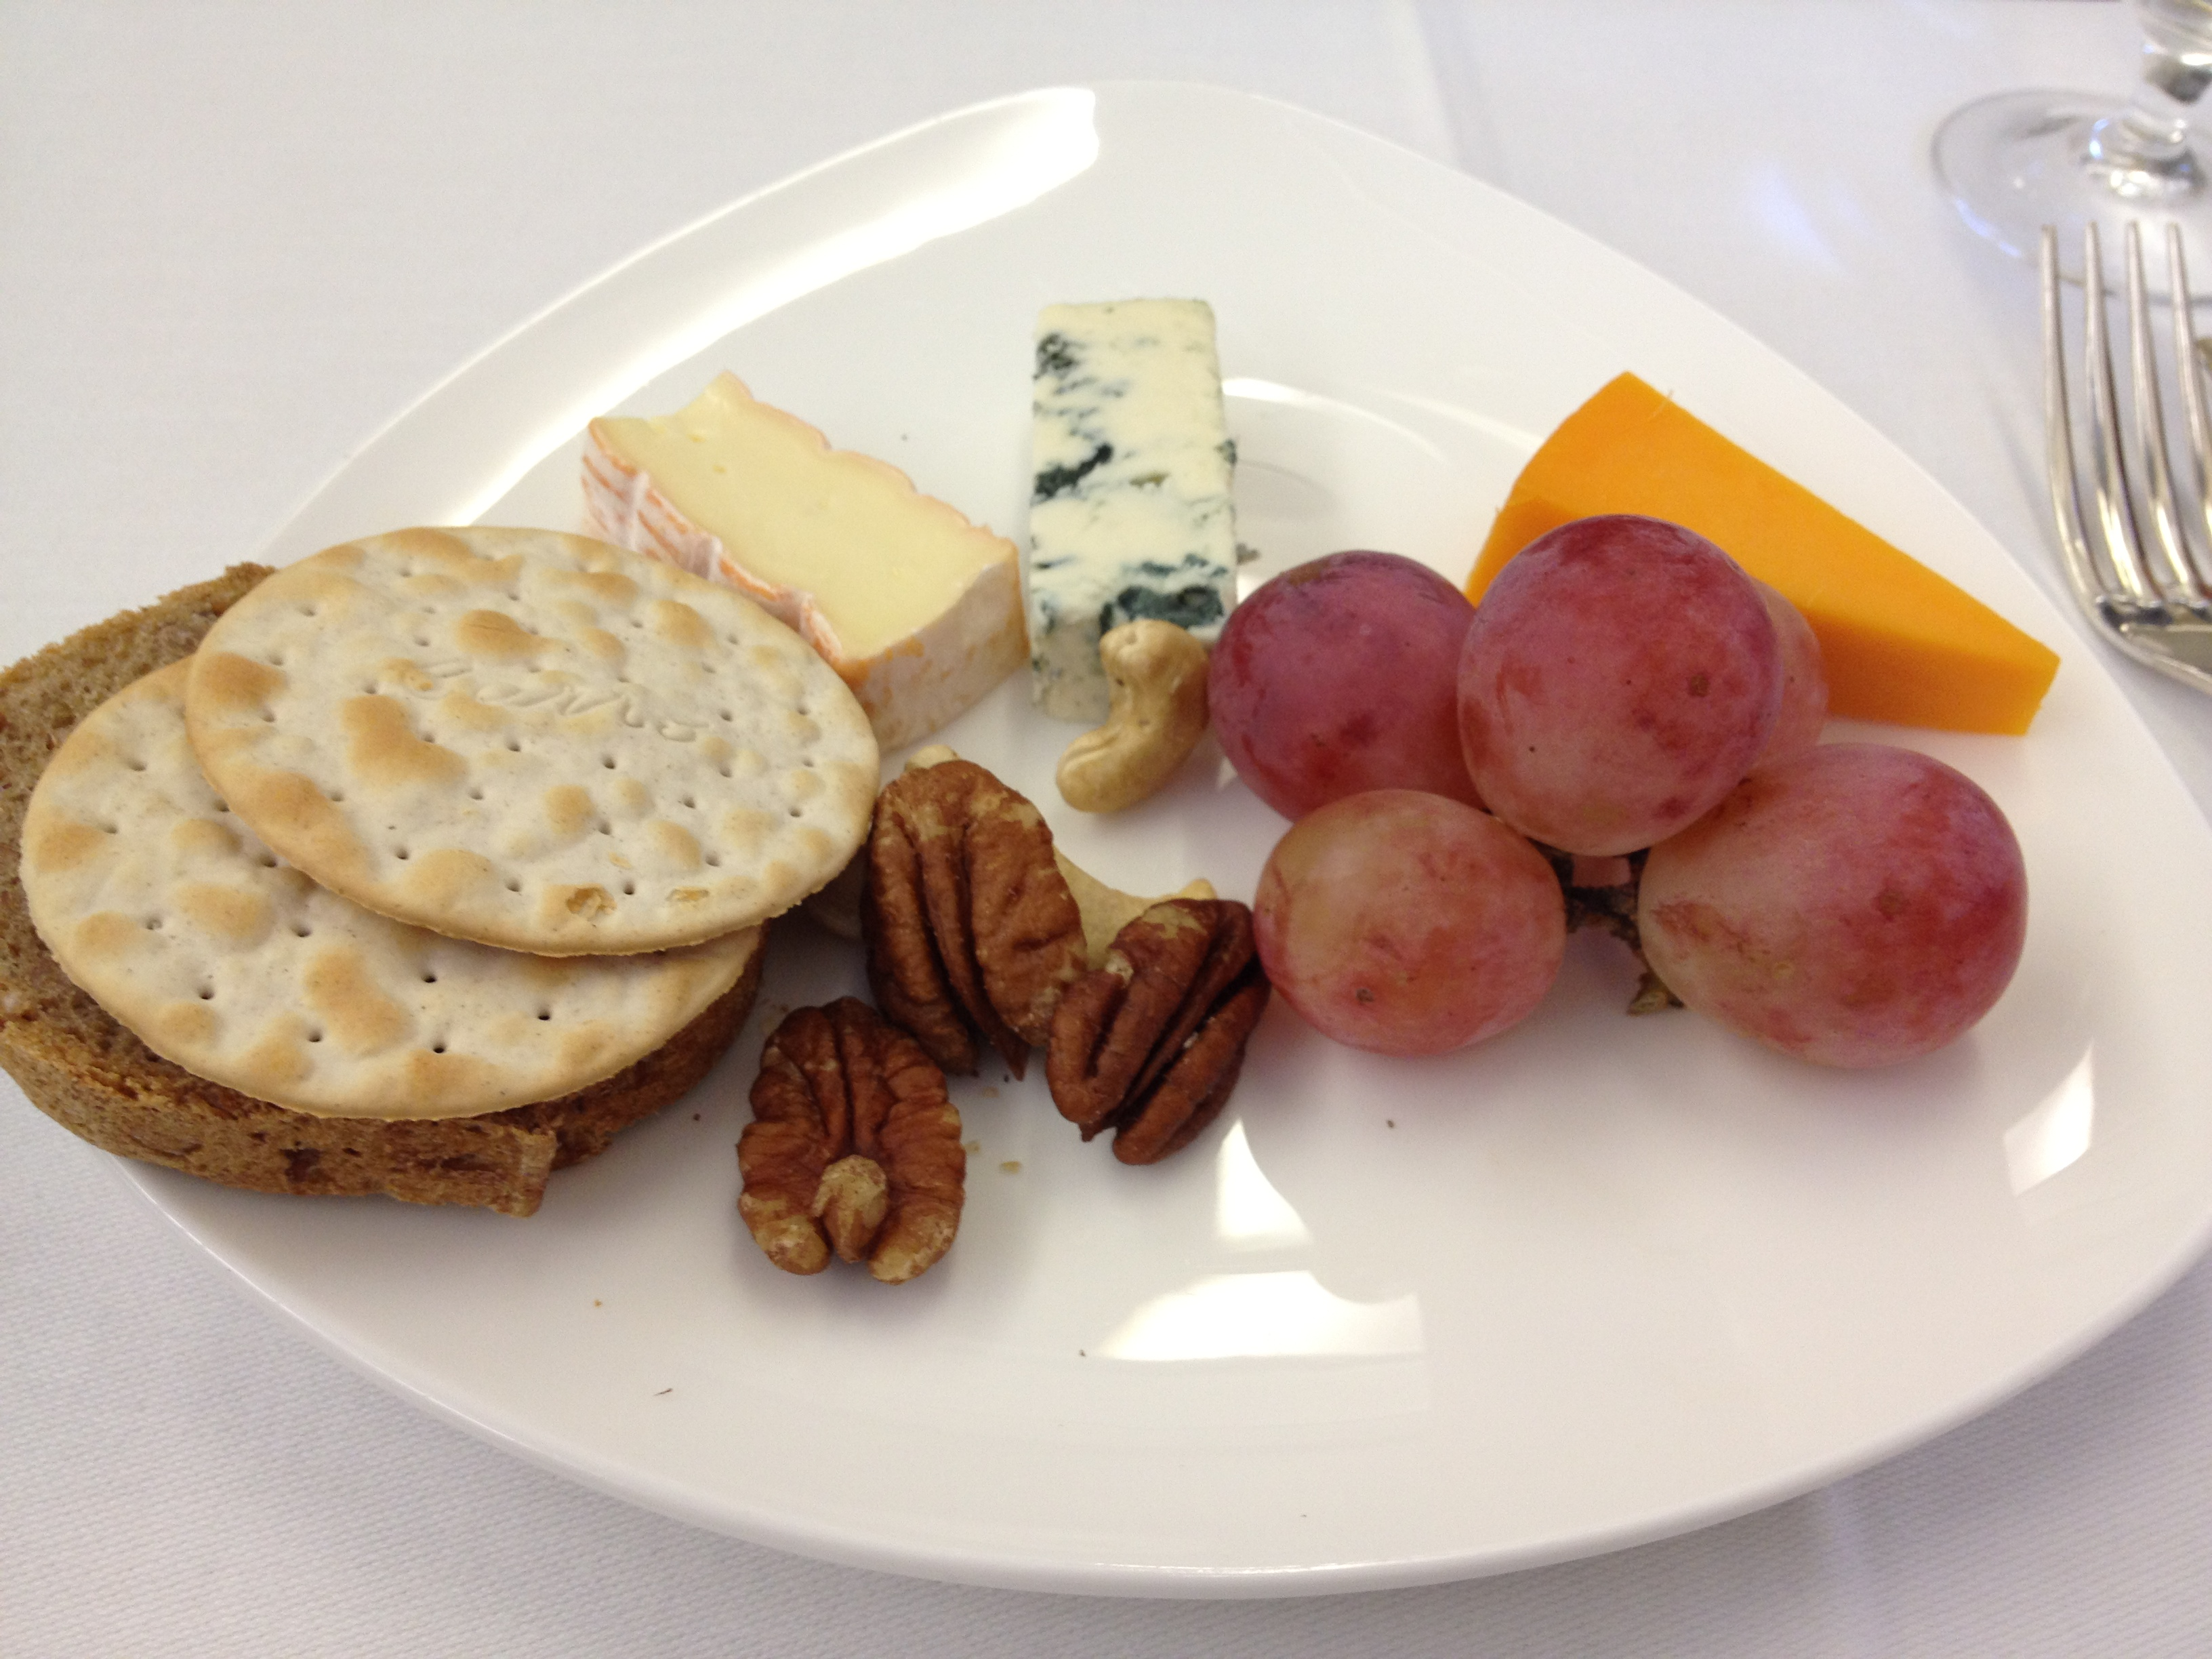 Cheese, crackers, fruits, and nuts